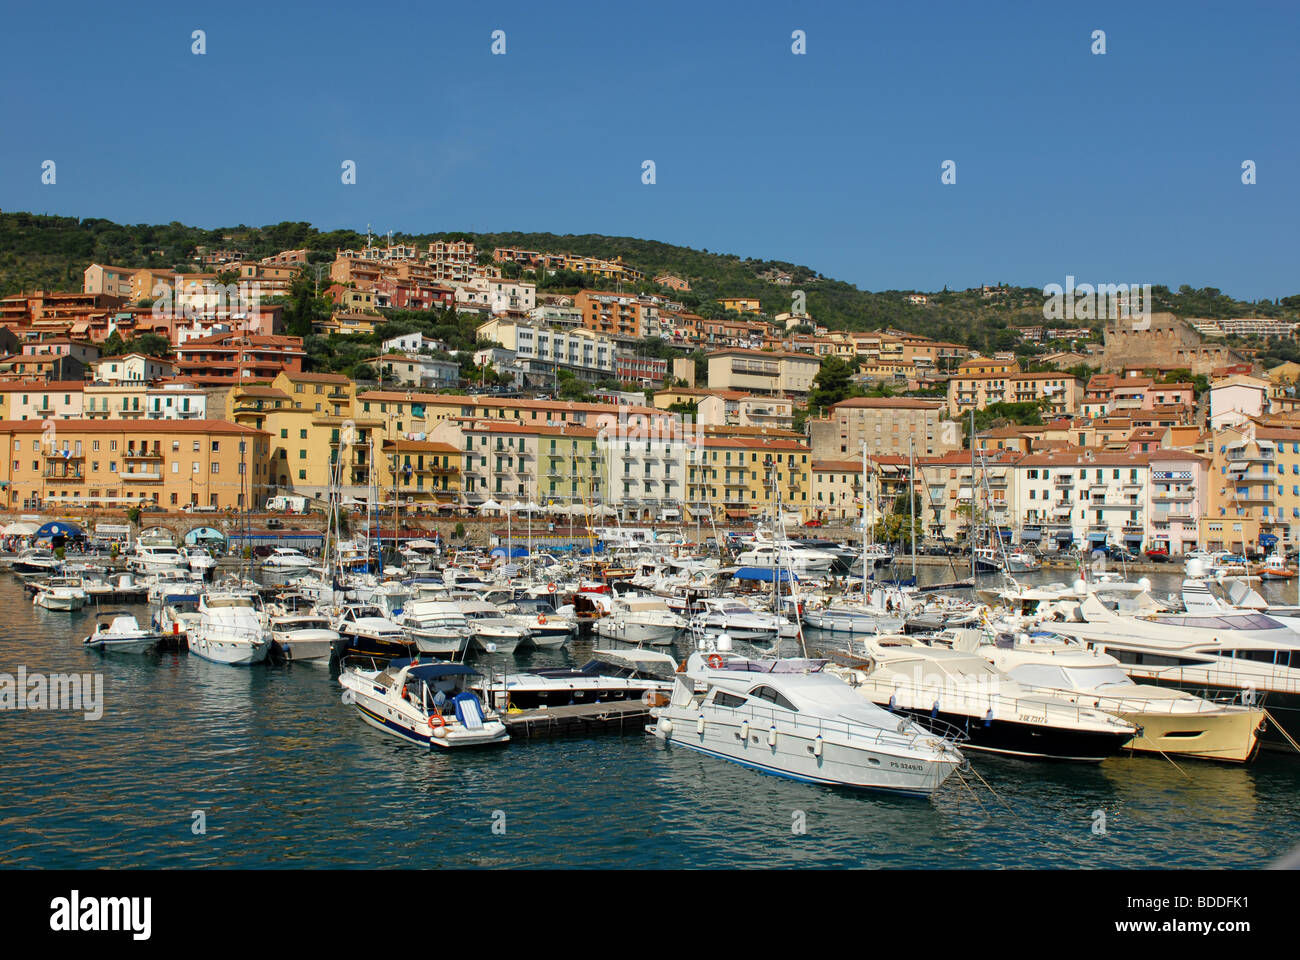 The yacht on Porto Santo Stefano - Stock Image